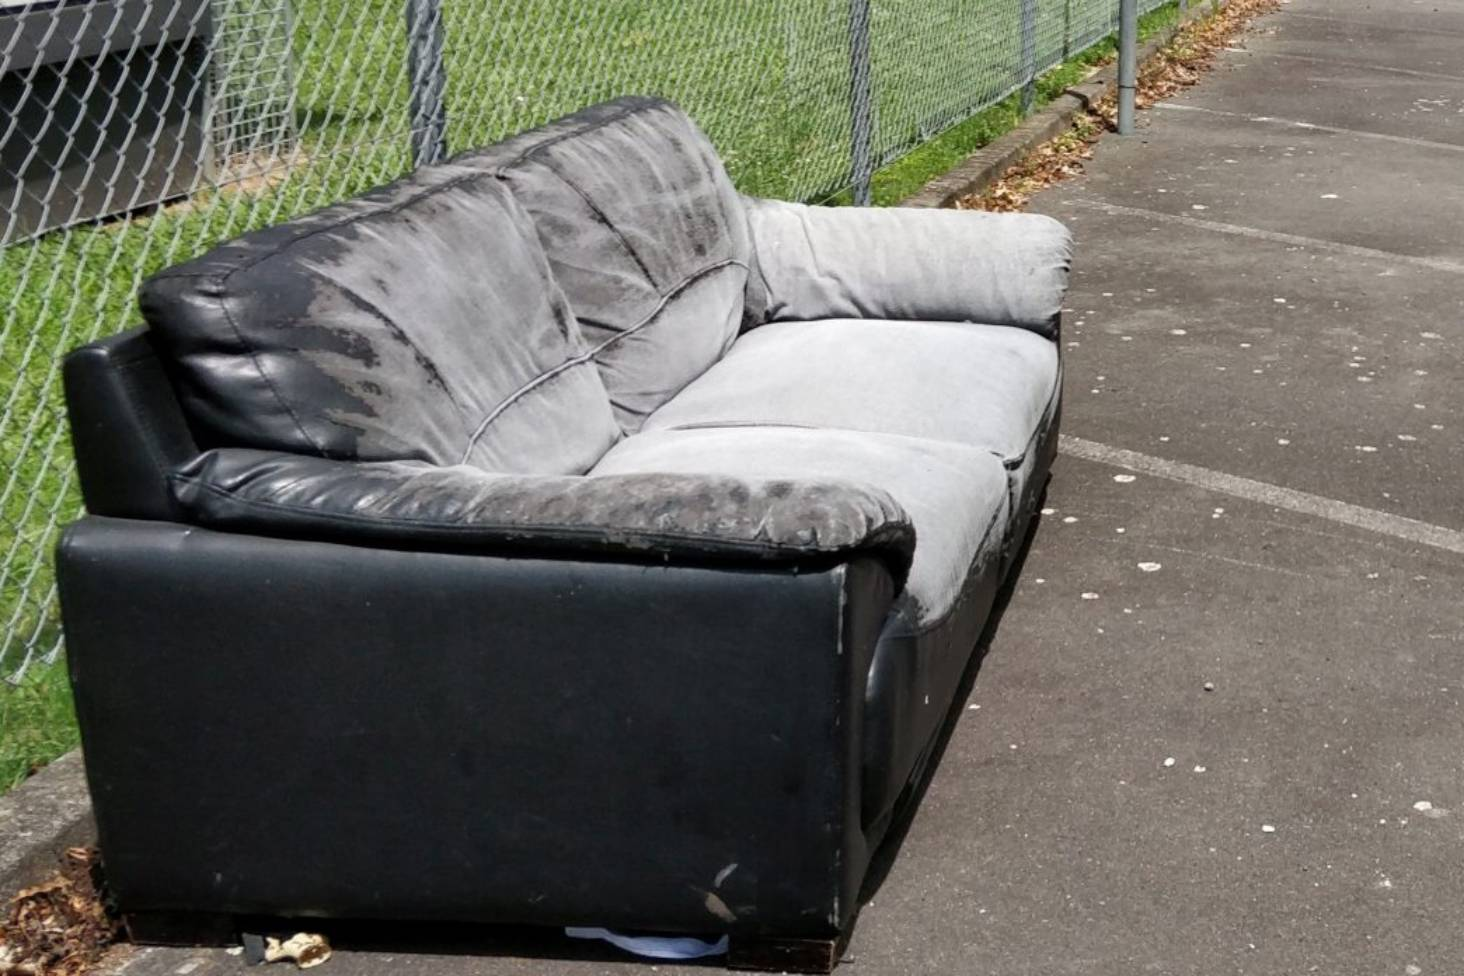 Leather Sofa Wellington Nz Damning Texts On Phone Found In Illegally Dumped Couch Stuff Co Nz